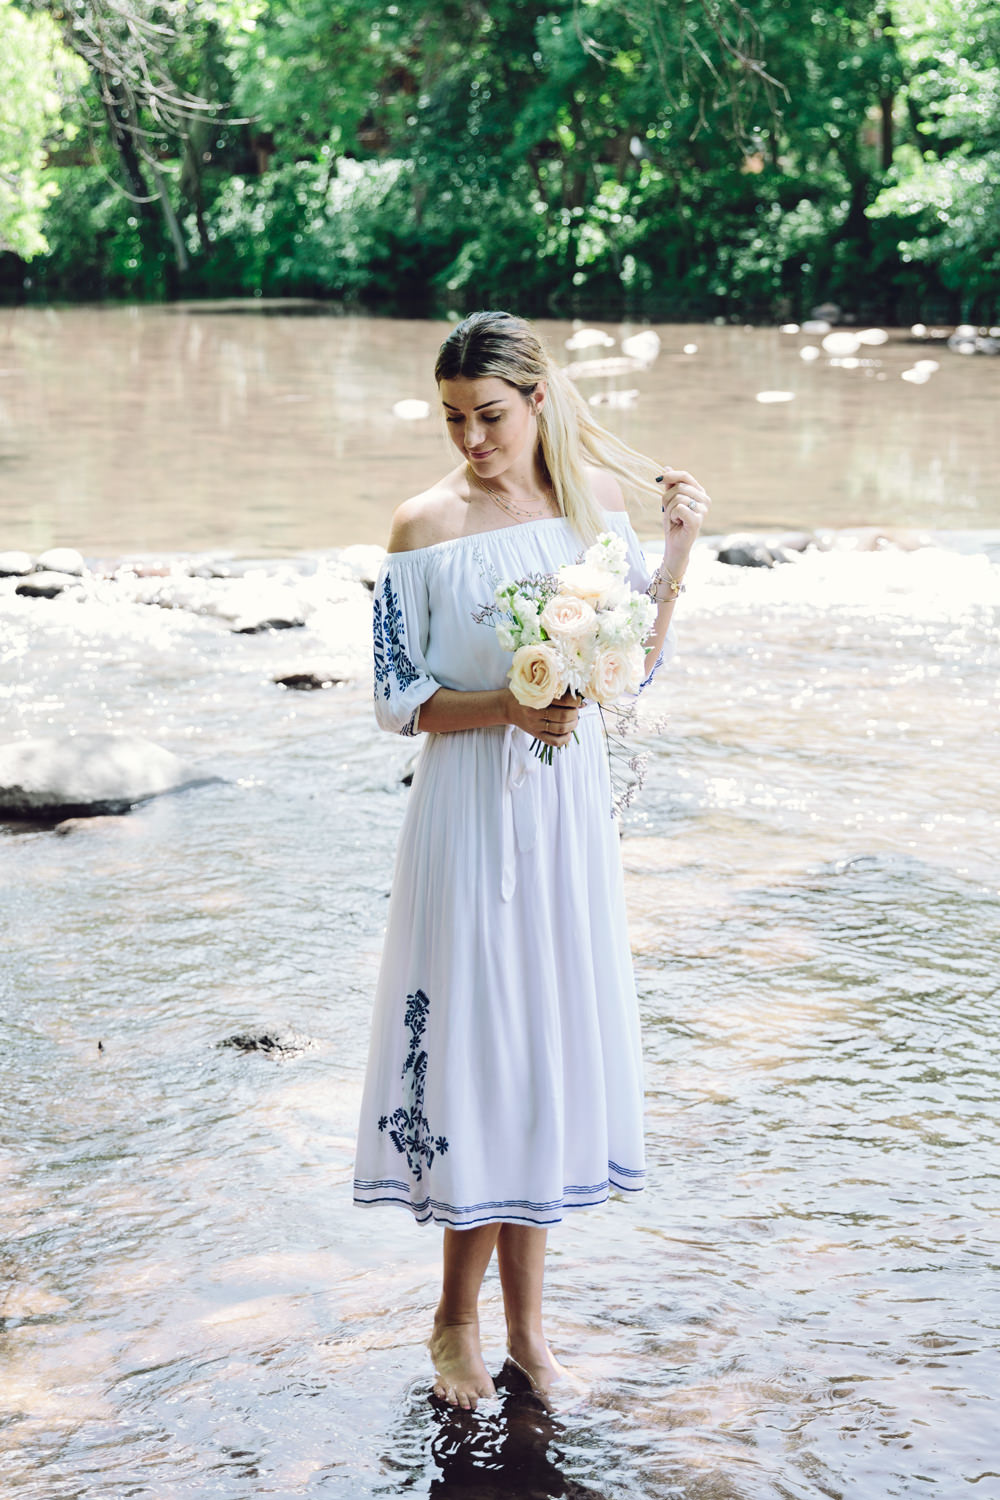 Dash of Darling wears a Tularosa off-shoulder white embroidered midi dress while on vacation in Sedona, Arizona and reviewing Philosophy shower gel for QVC.